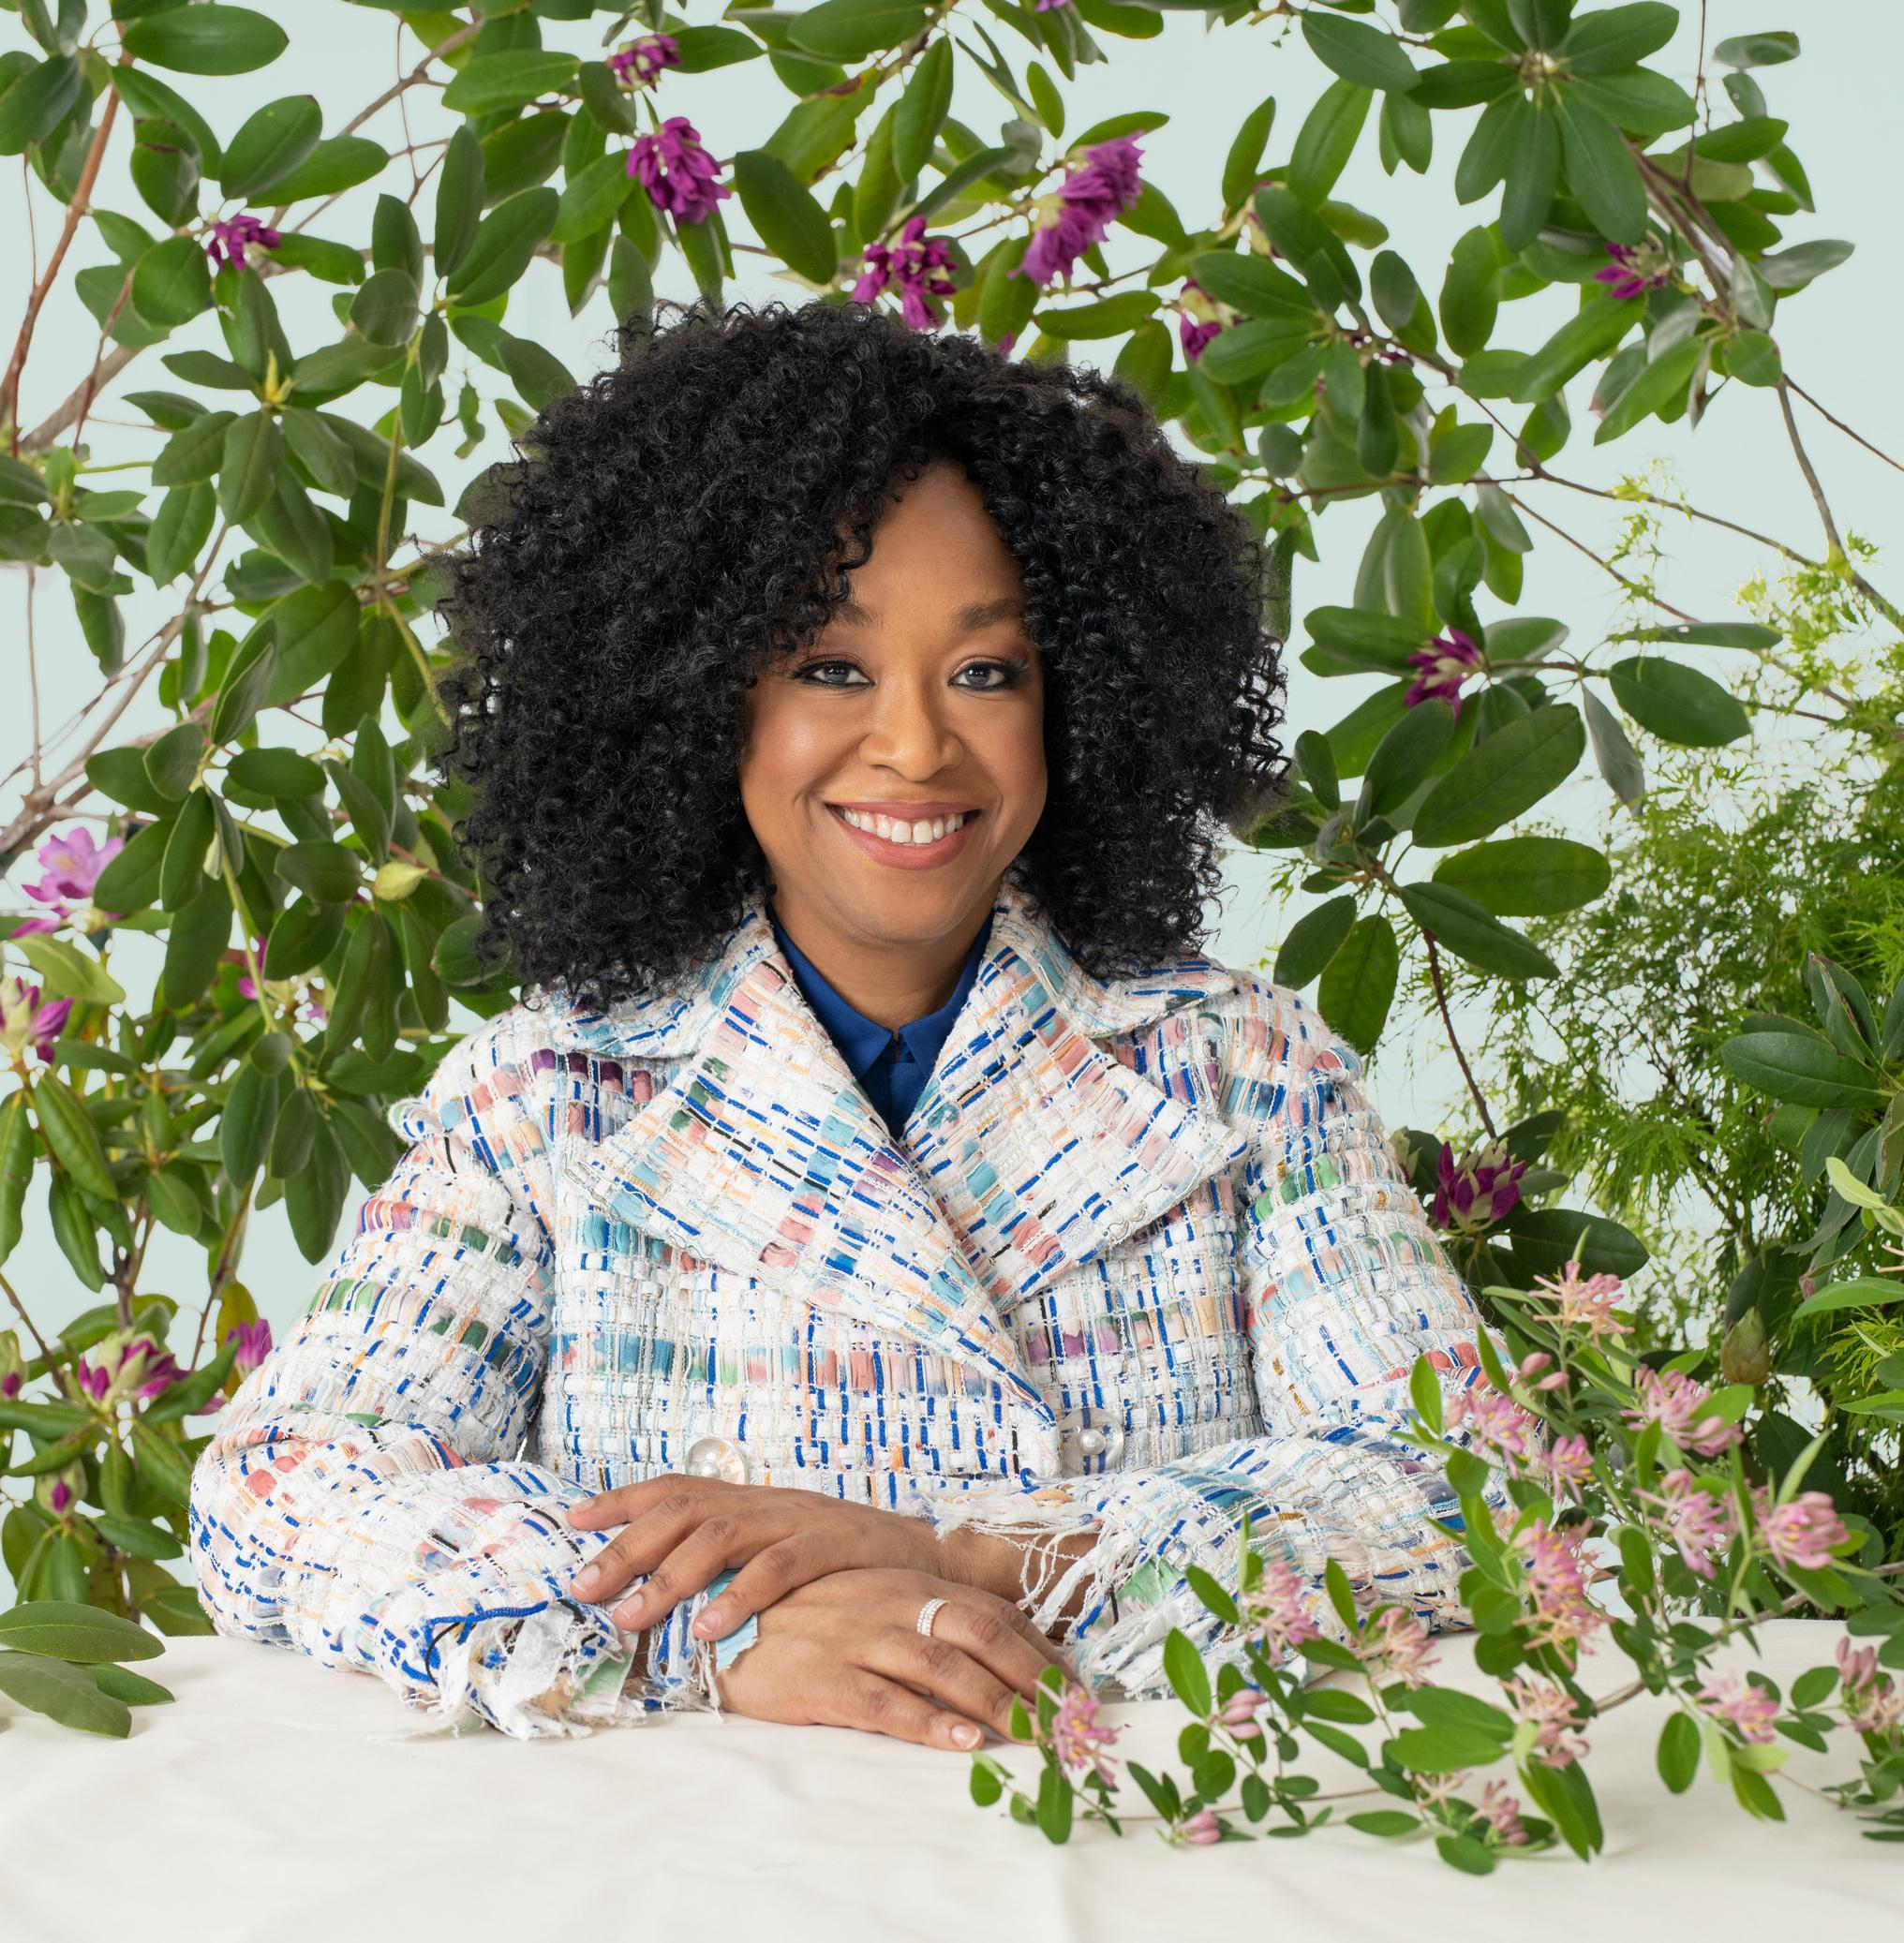 Shonda Rhimes, creator of Bridgerton, Grey's Anatomy and more, emerges from unopened fists of Rhododendron – like her many as yet untold stories.